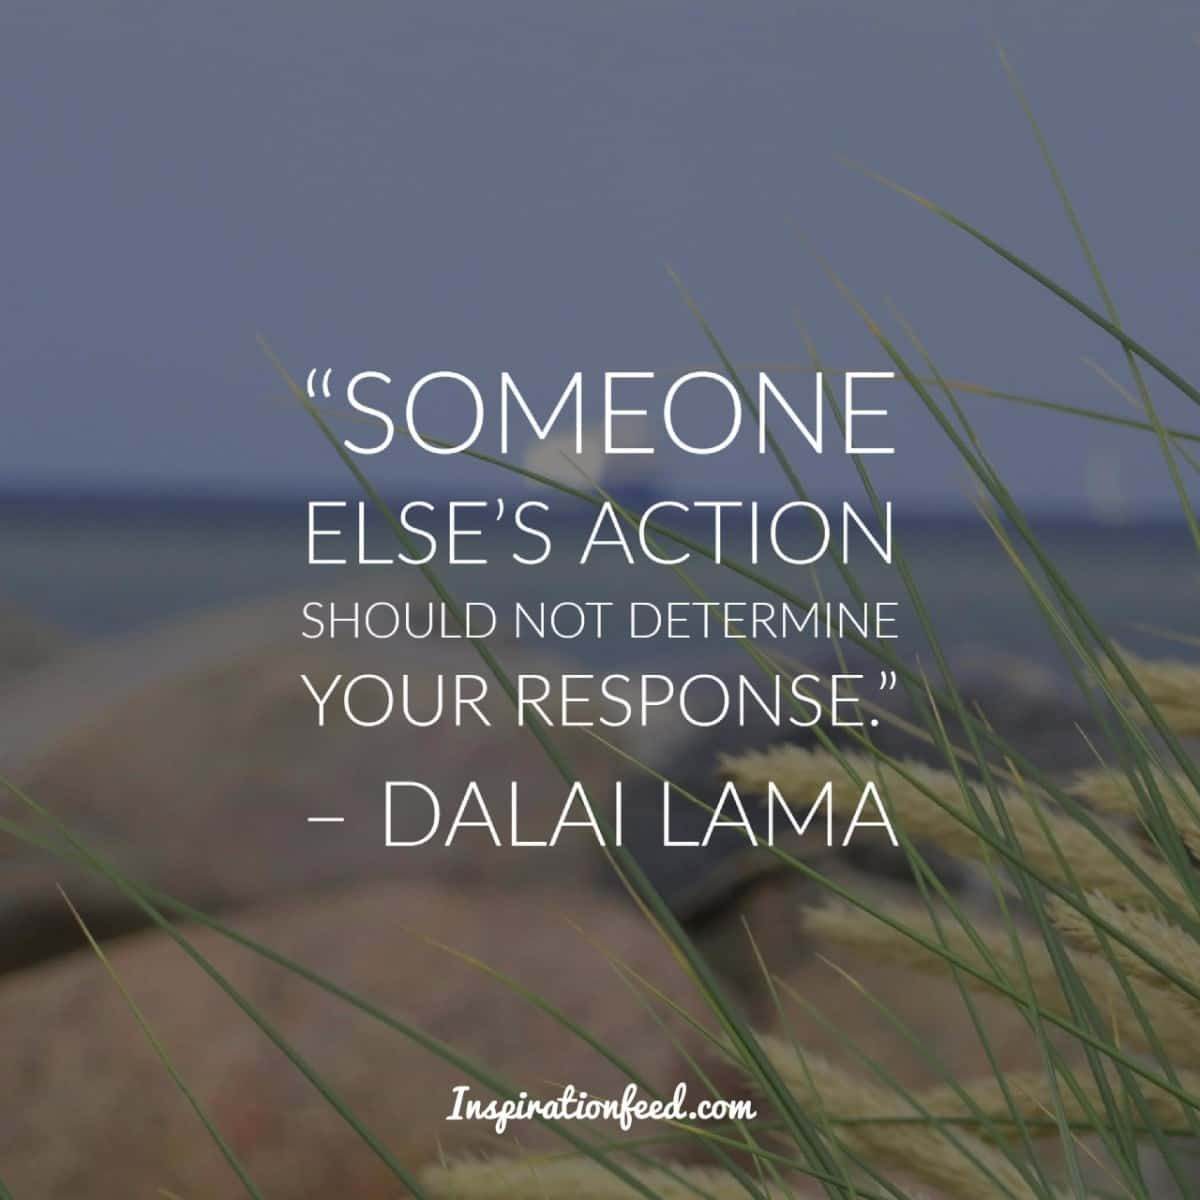 30 Dalai Lama Quotes On Compassion Peace And Life Dalai Lama